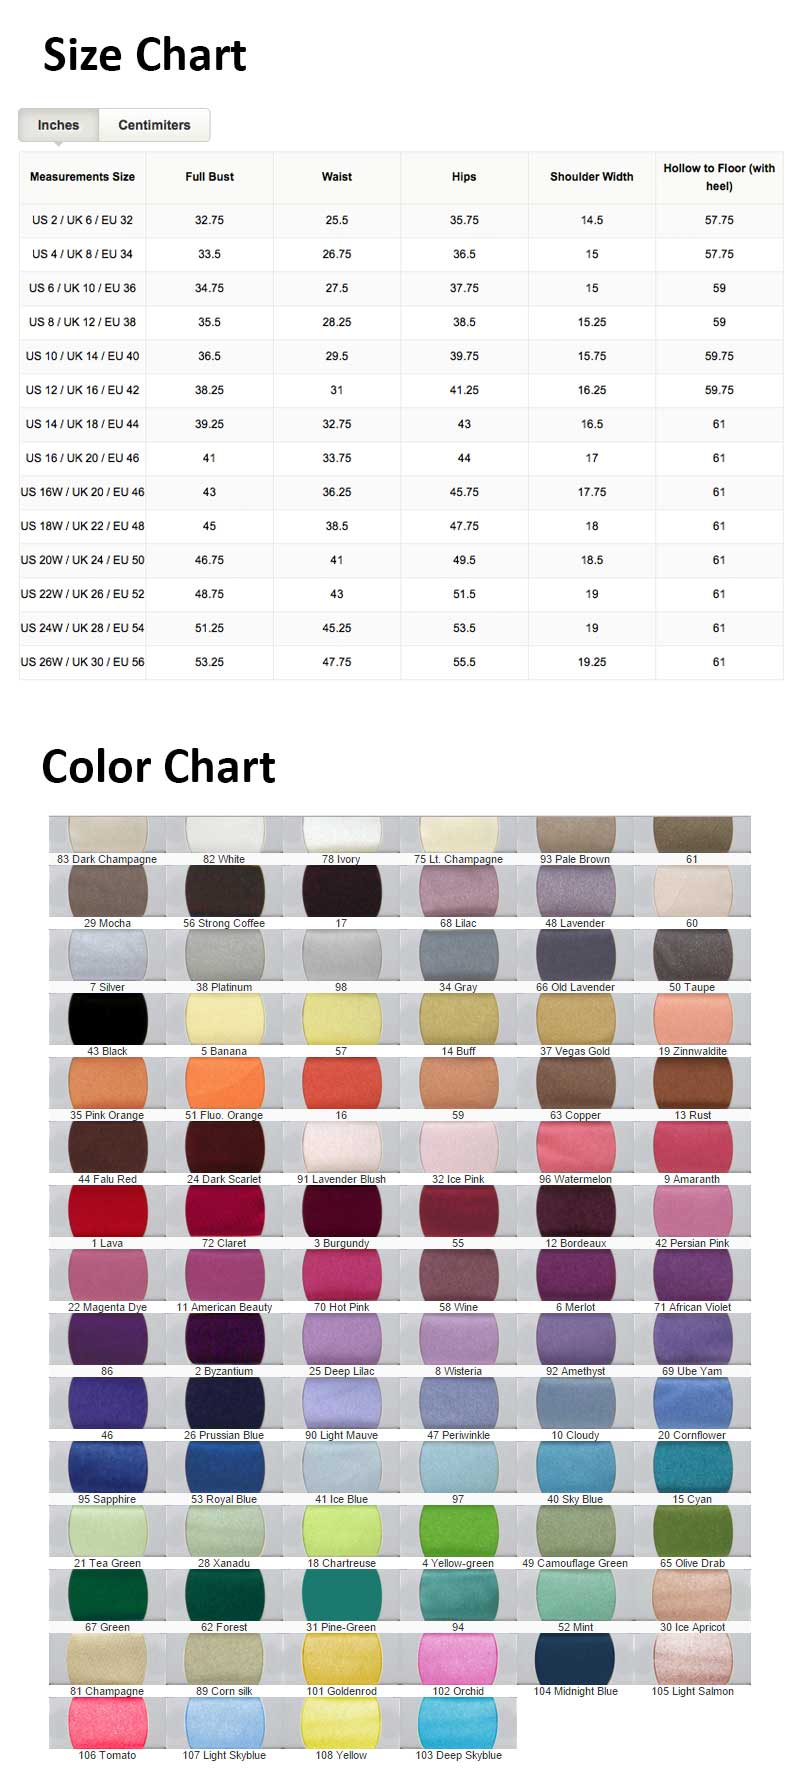 Size & Color Chart